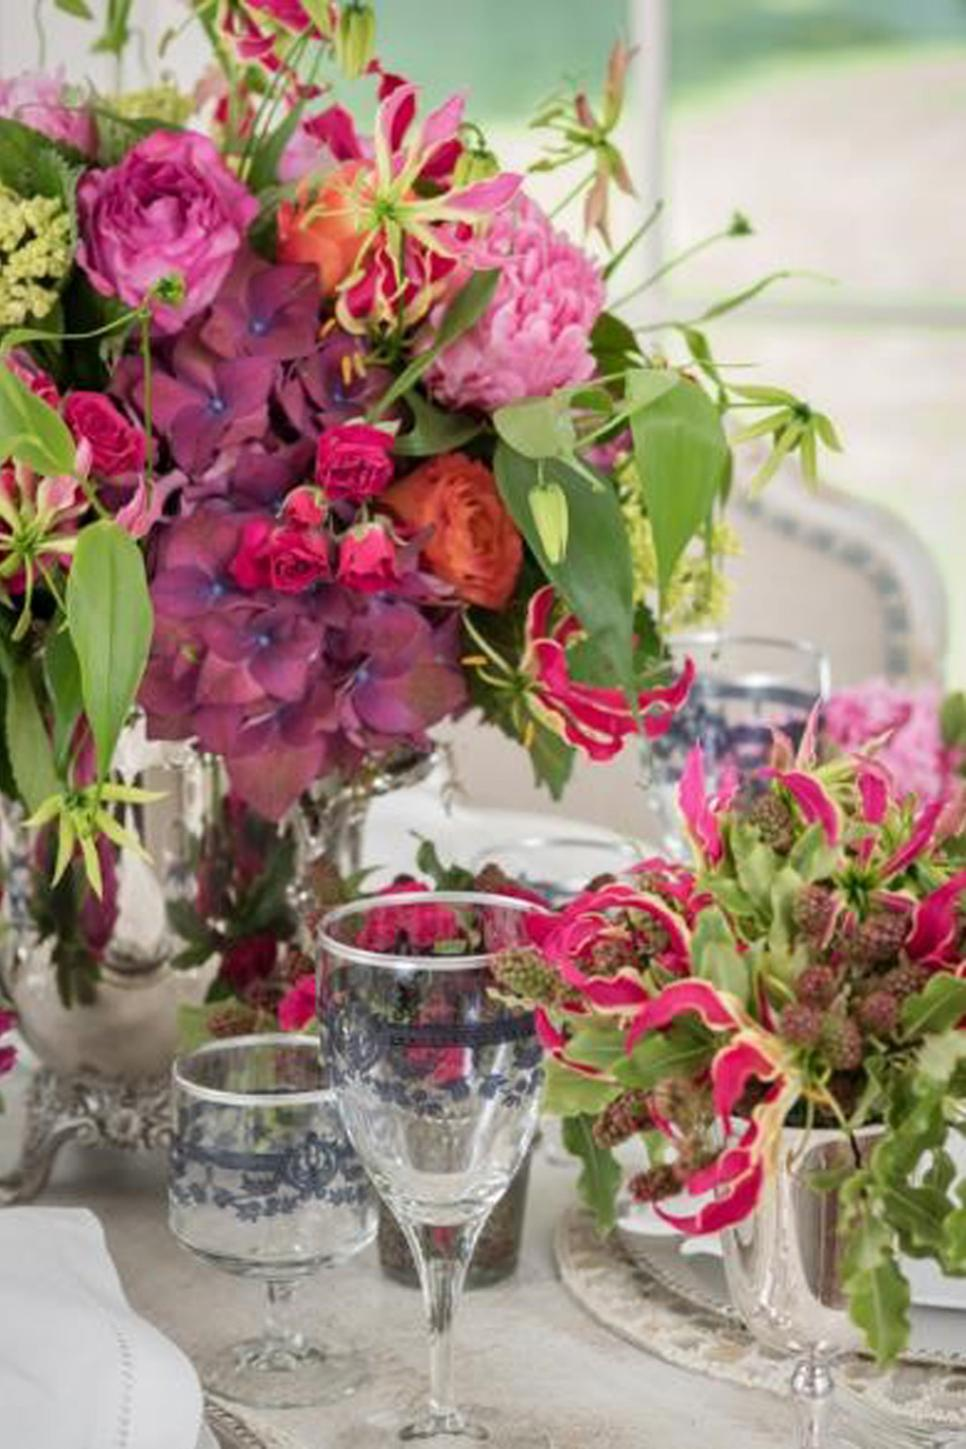 Pink and Orange Tabletop Floral Arrangements and Crystal Stemware